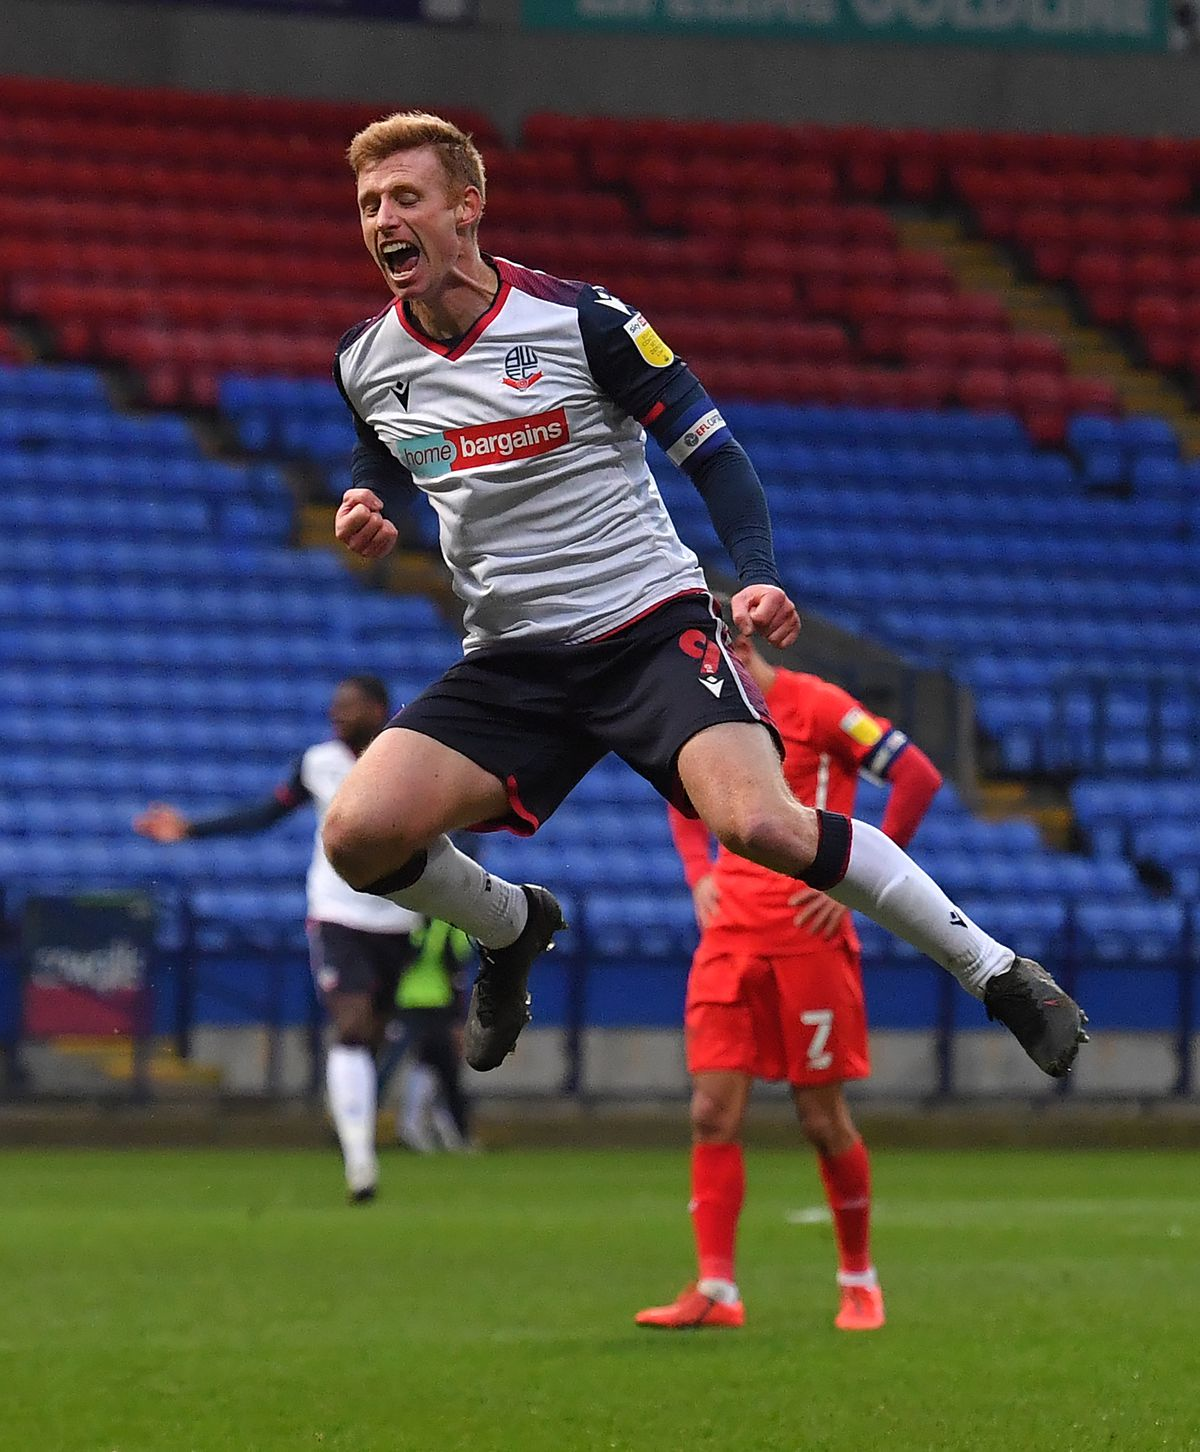 Bolton Wanderers v Leyton Orient - Sky Bet League Two